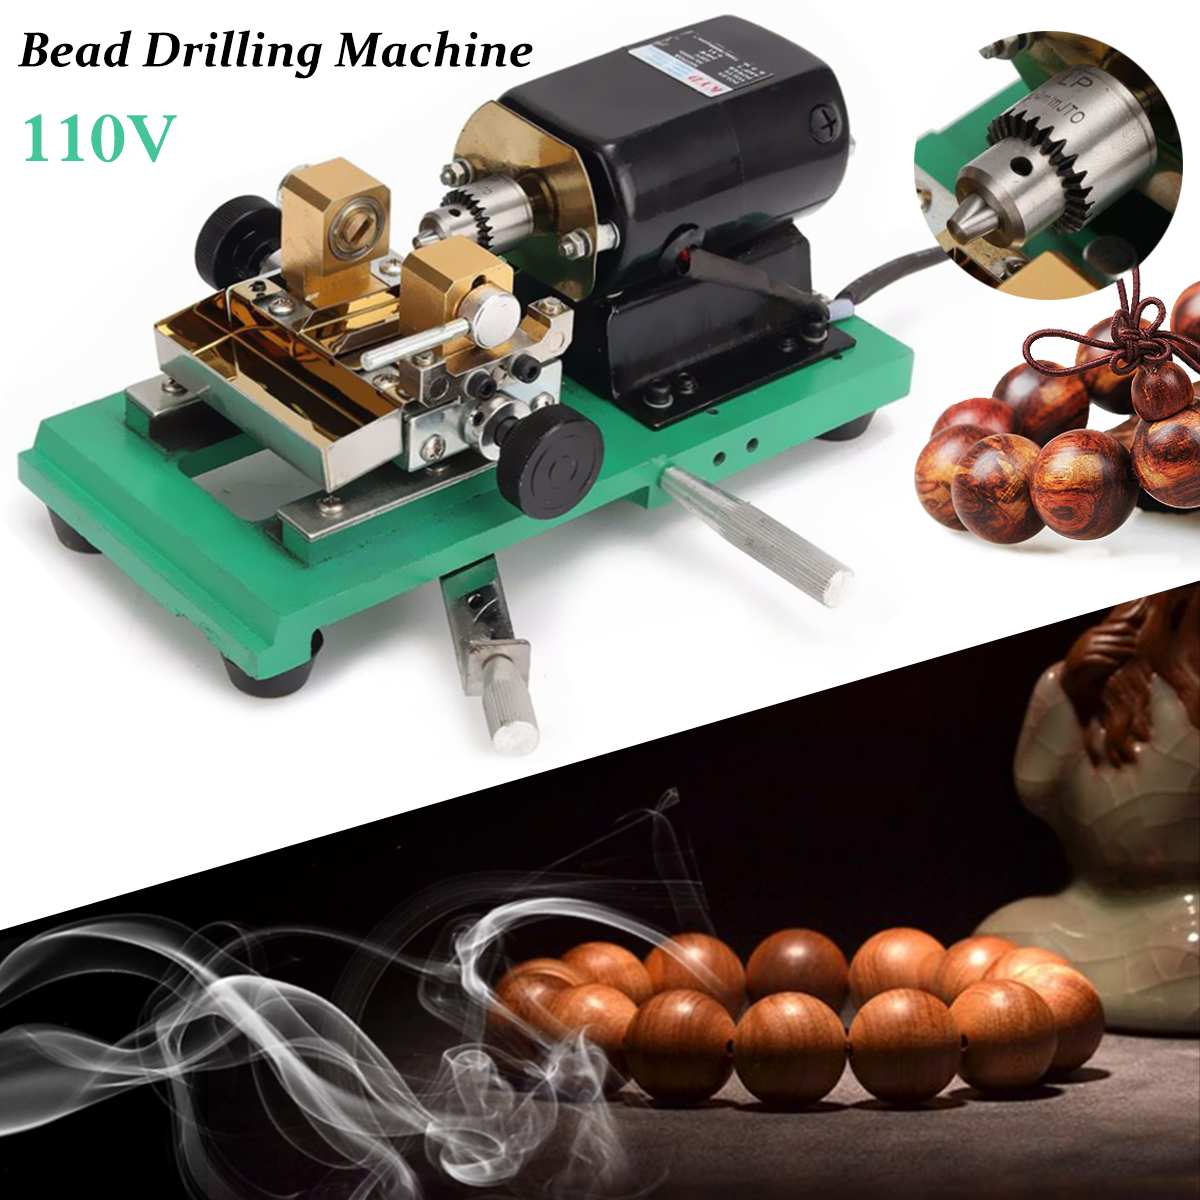 300W CNC Mini Lathe Machine Tools DIY Woodworking Buddha Pearl Grinding Polishing Beads Wood Lathe Drill Rotary Tool 110V